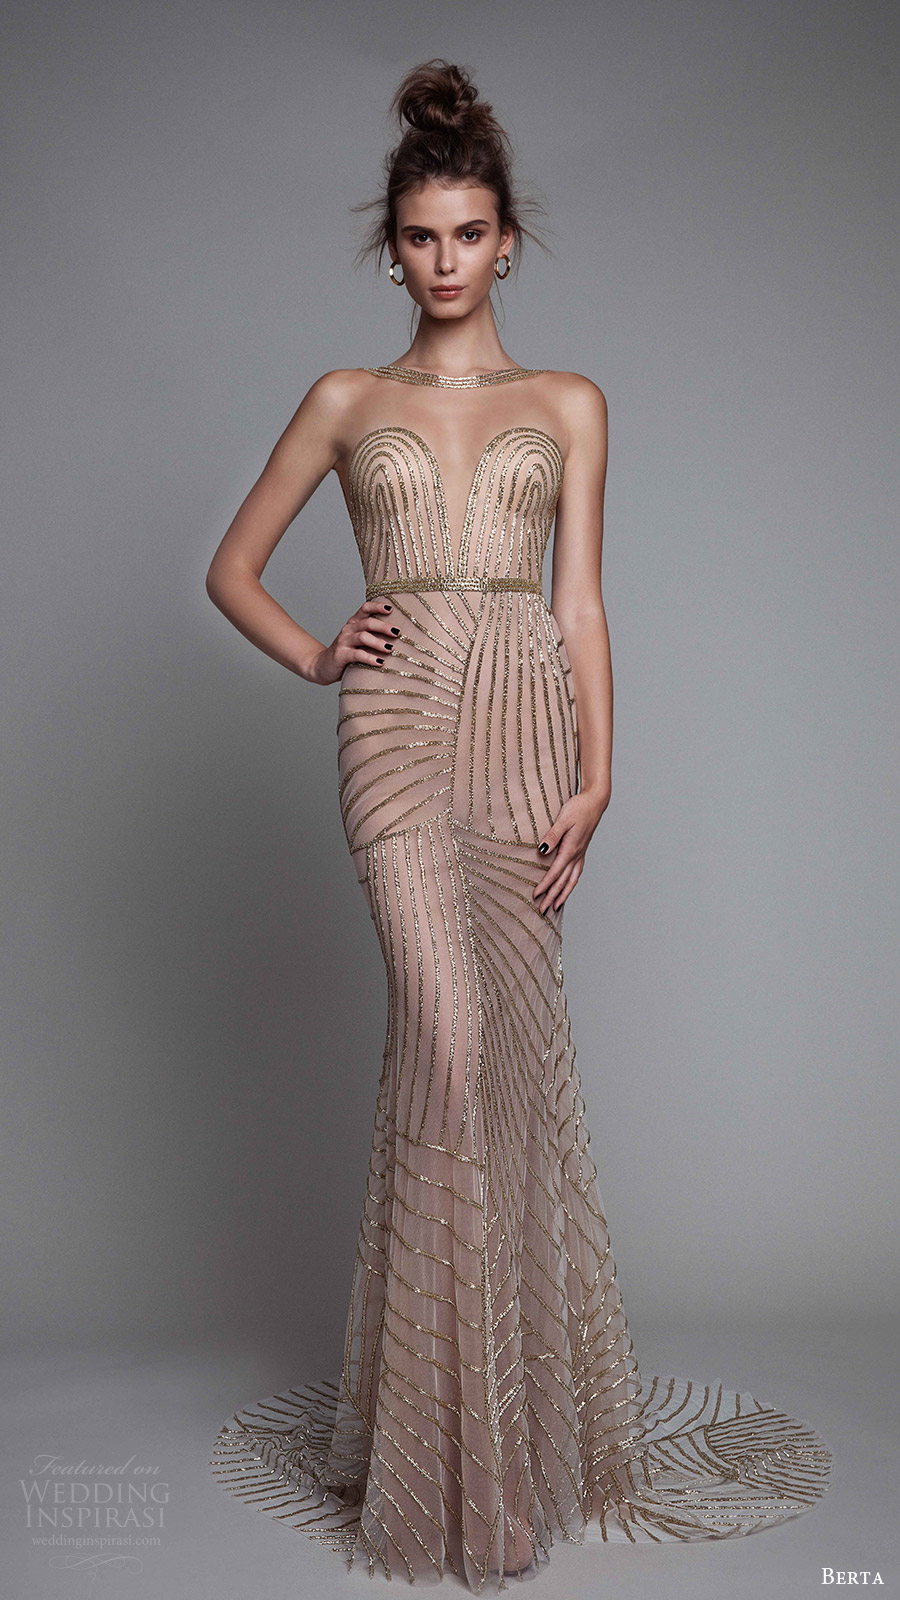 Berta Fall 2017 Ready-to-Wear Collection | Wedding Inspirasi